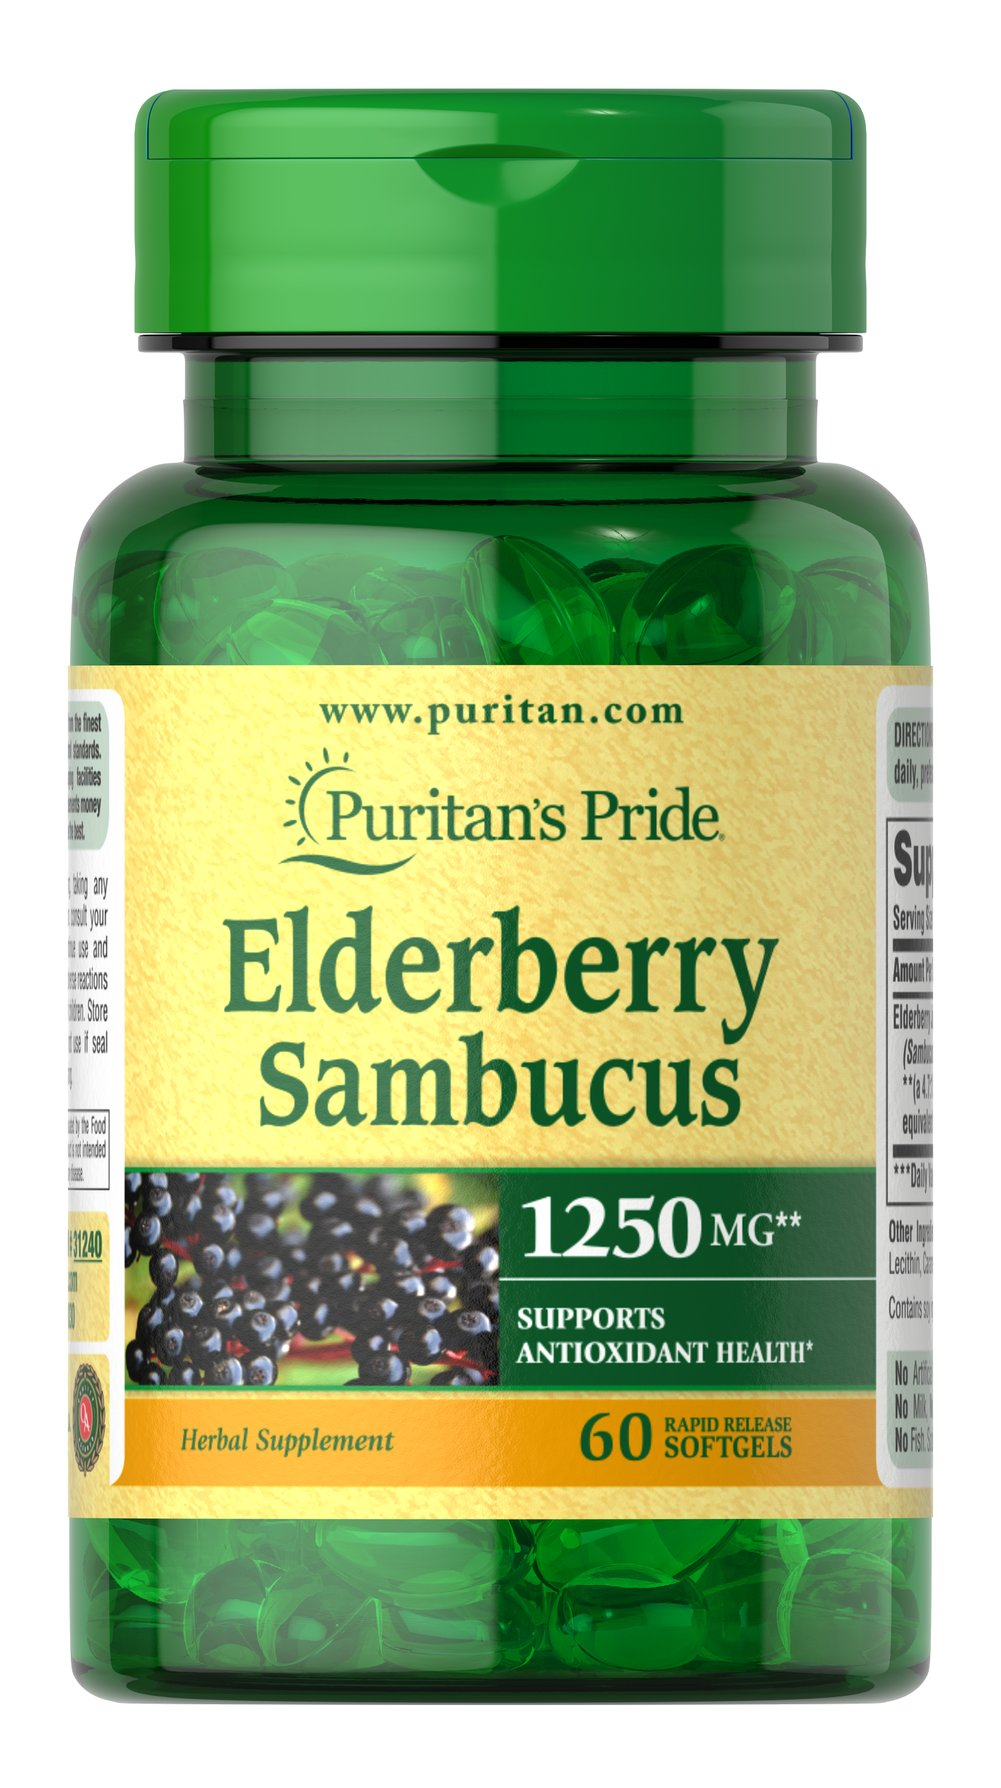 Elderberry Sambucus 1250 mg  60 Softgels 1250 mg $13.99